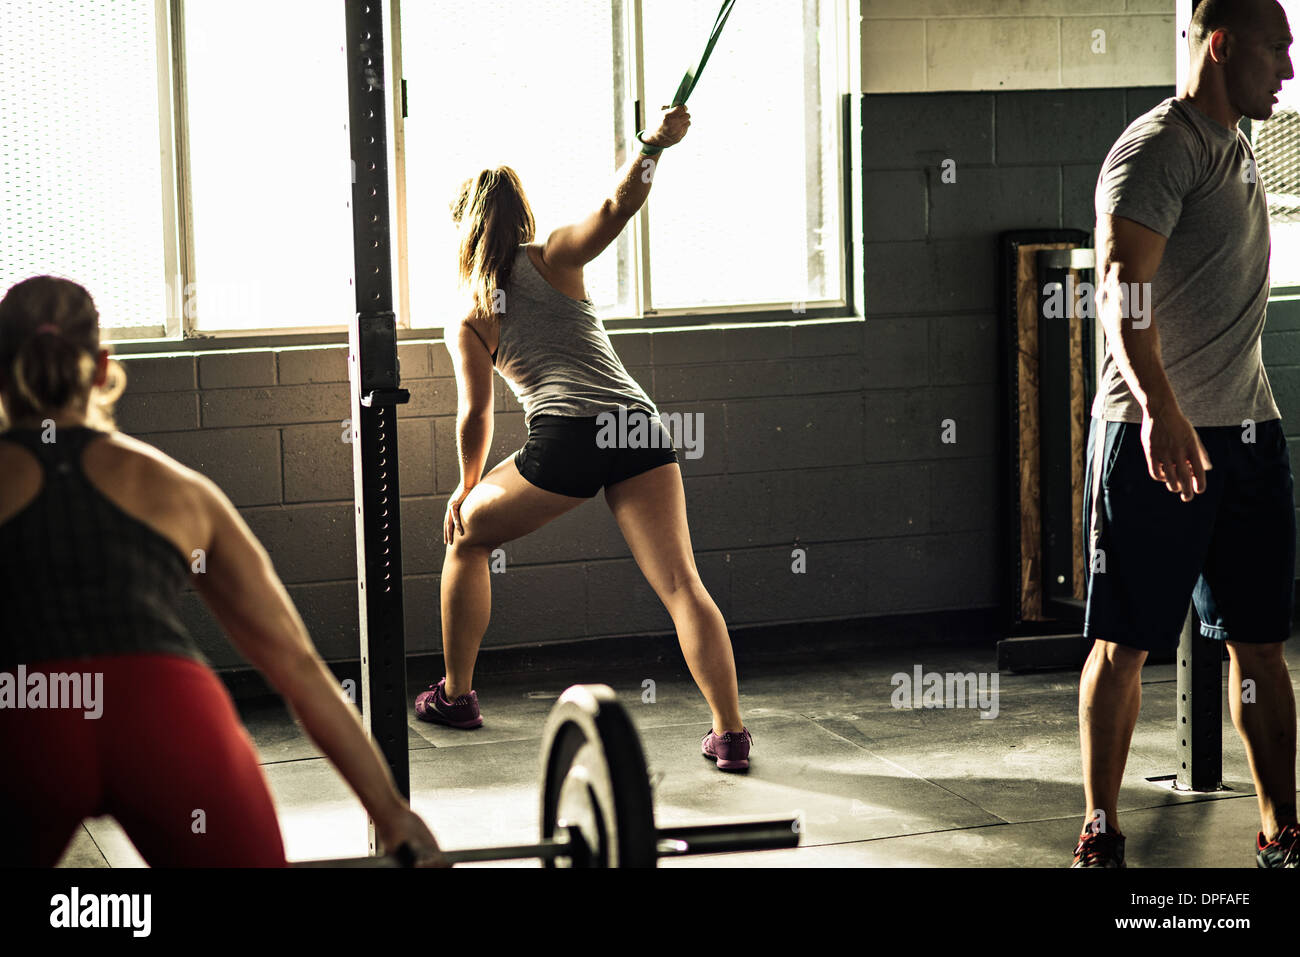 Women and trainer working out in gymnasium - Stock Image